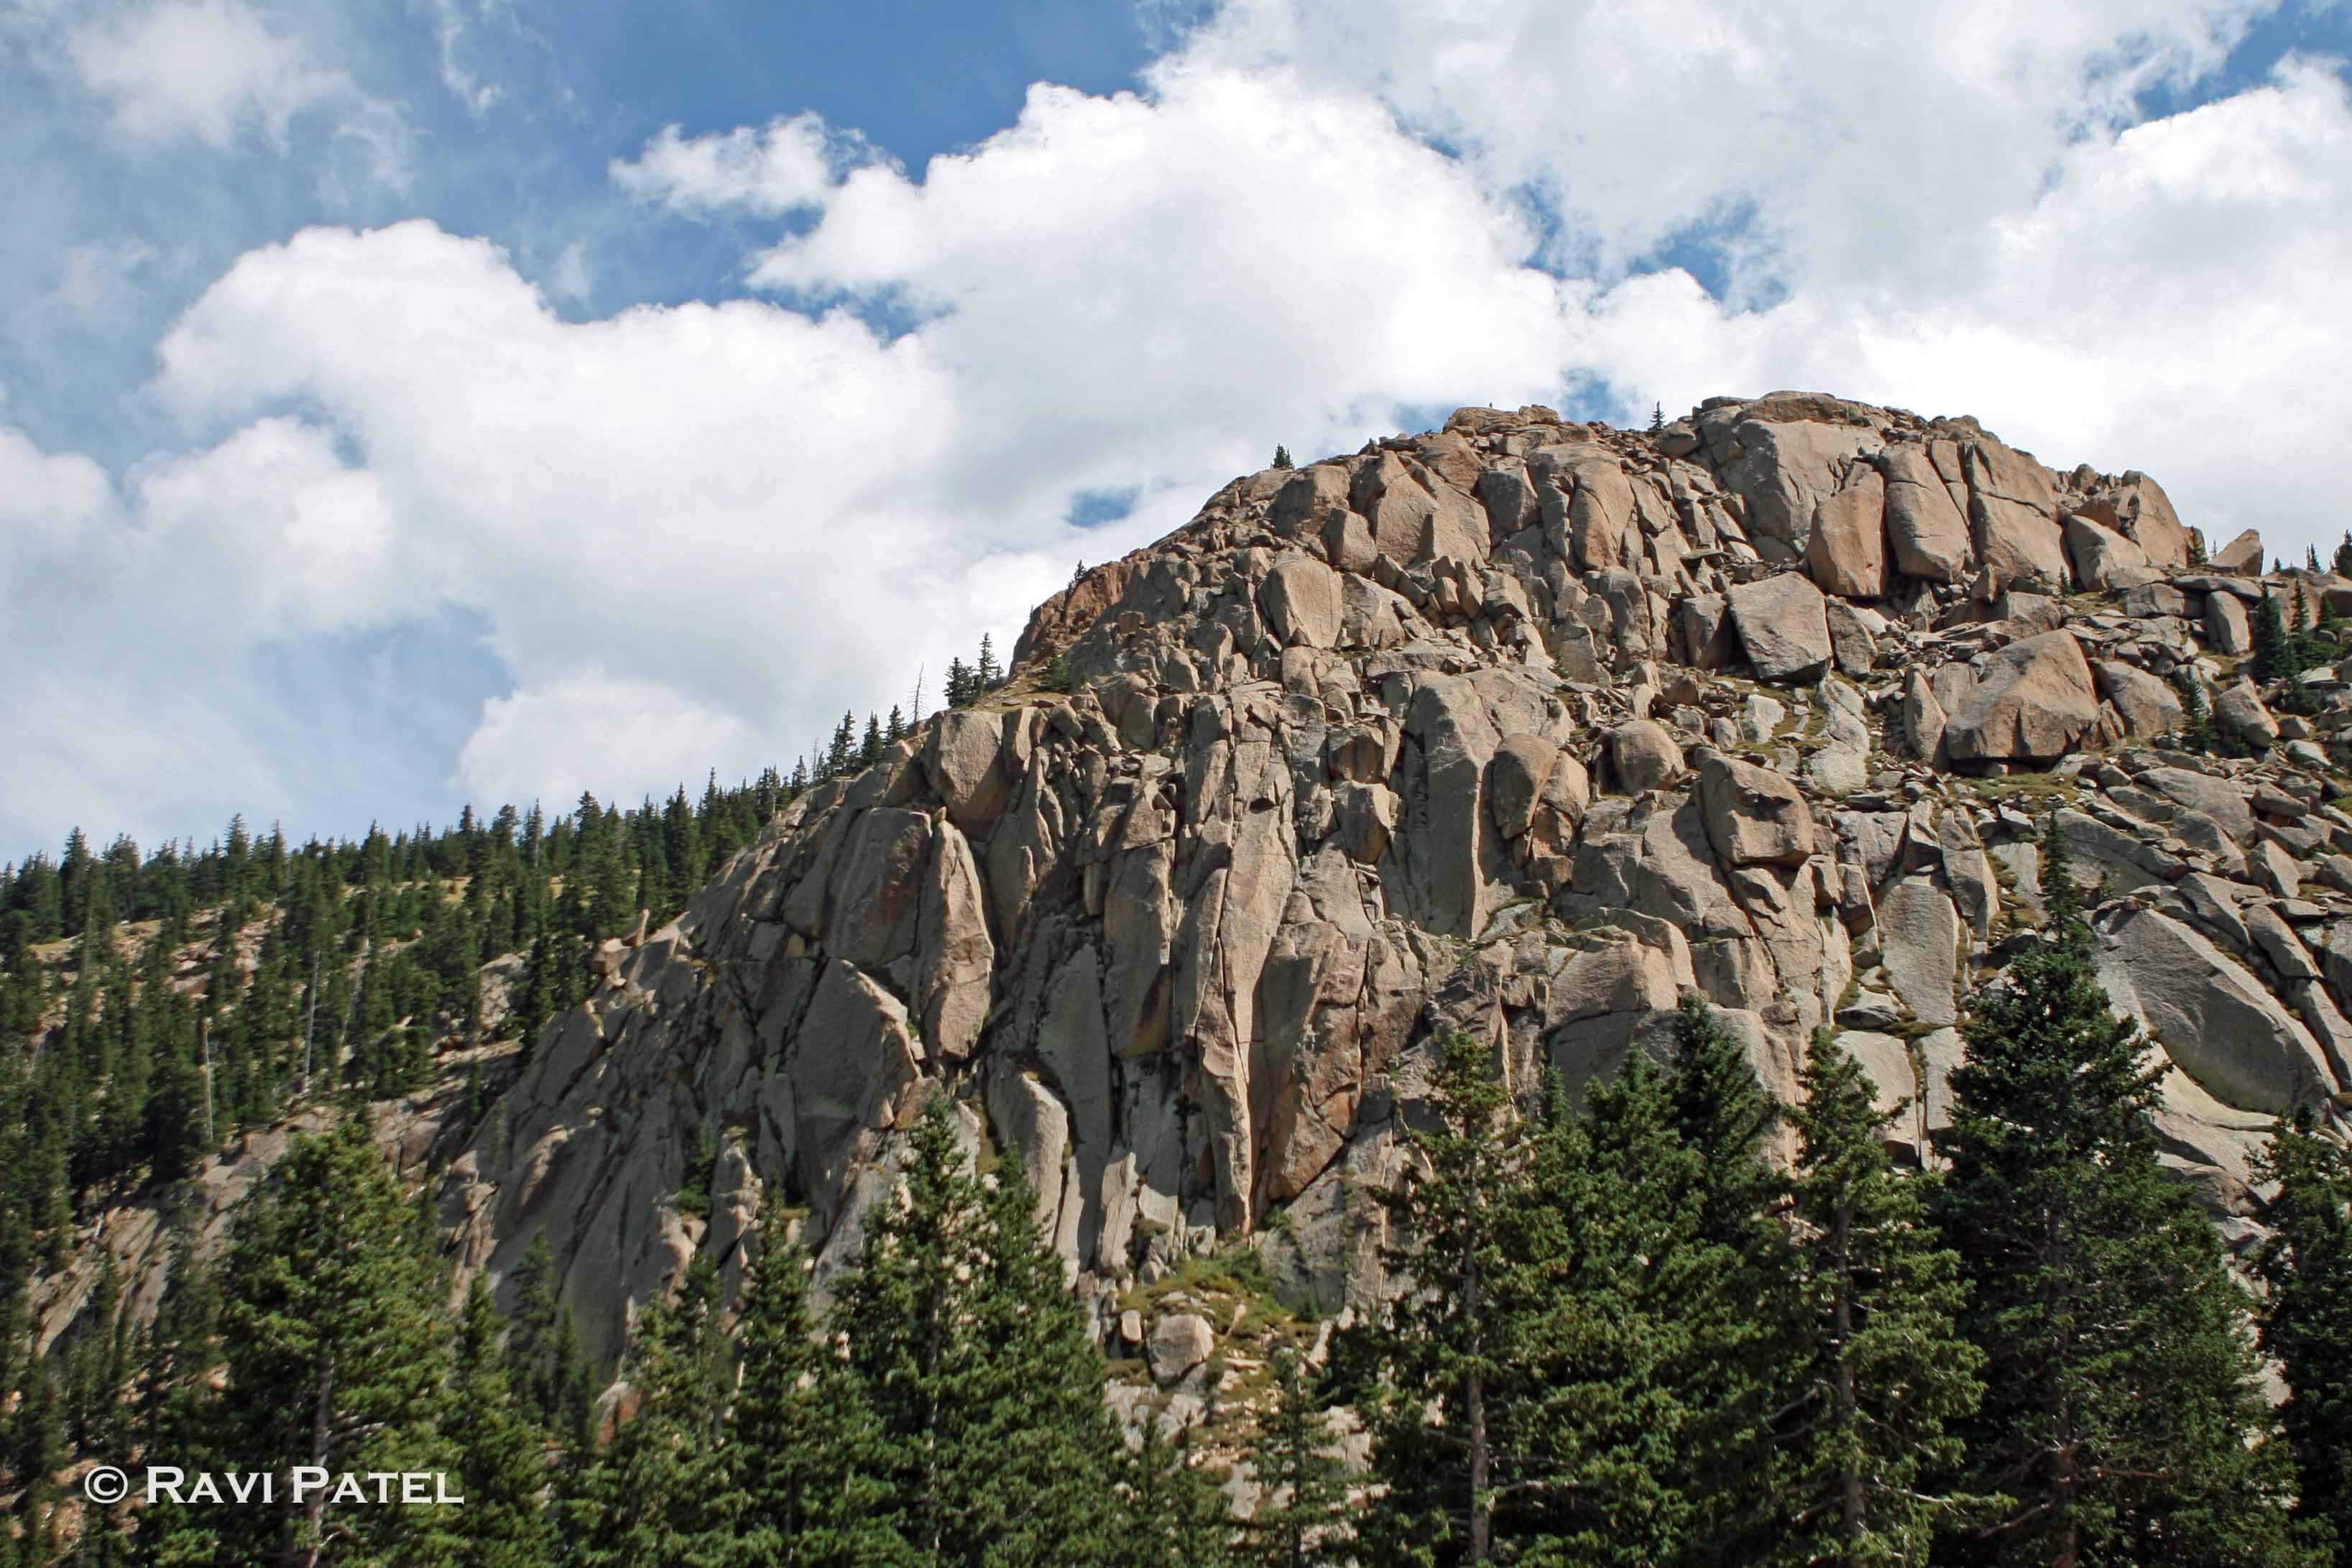 List of rock formations